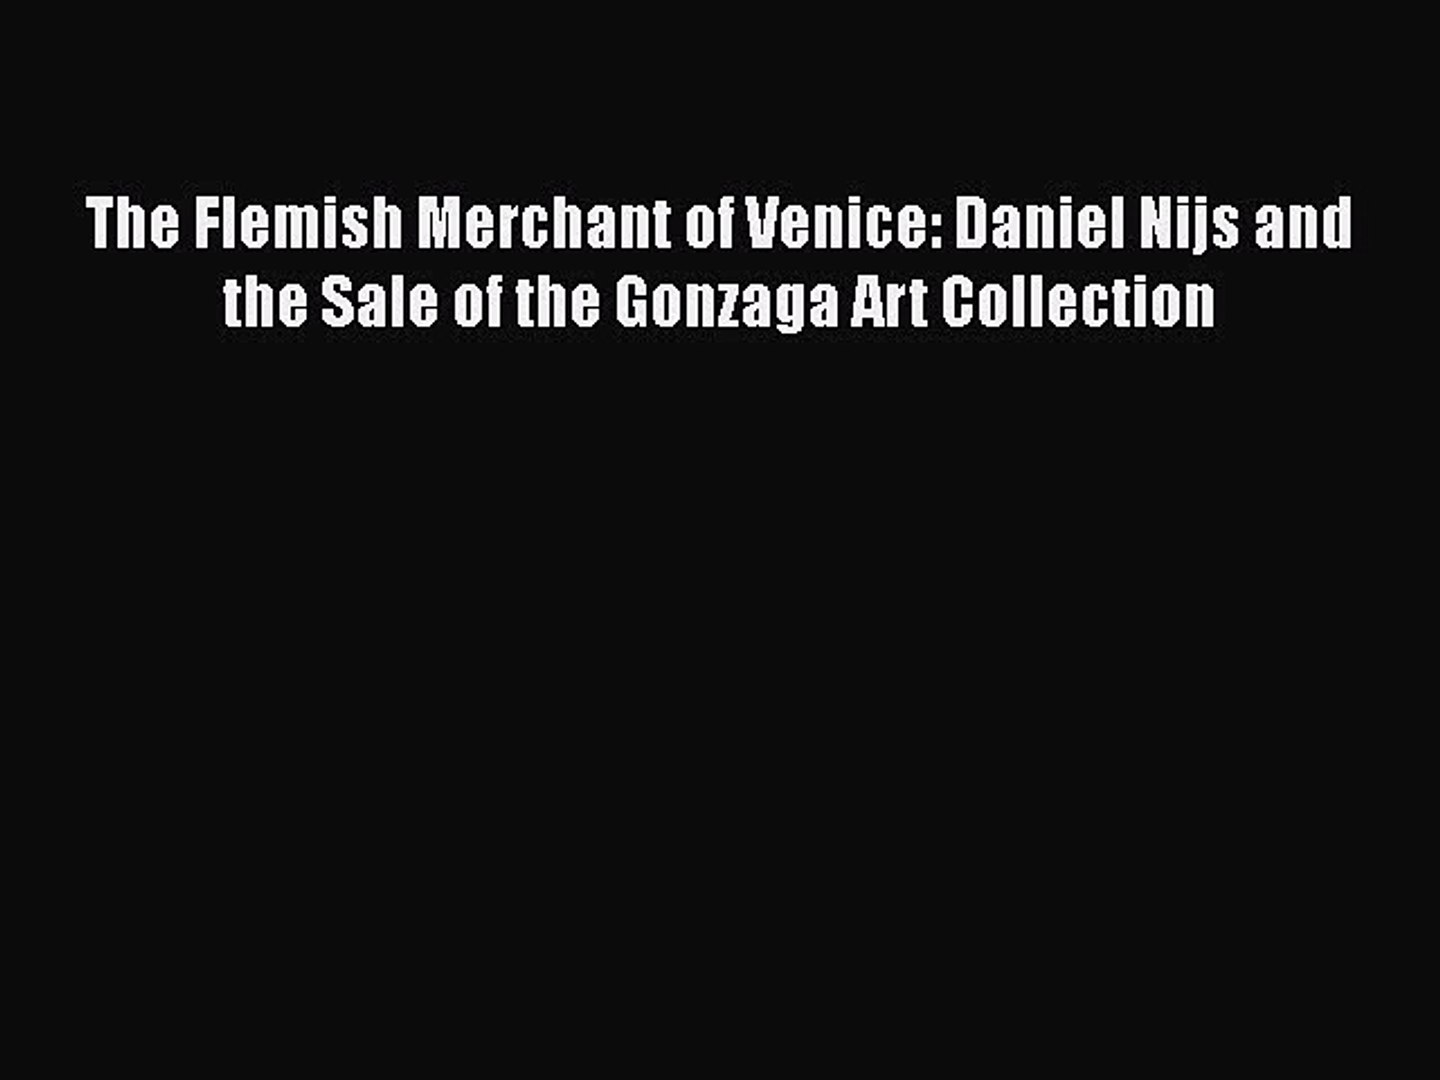 Download The Flemish Merchant of Venice: Daniel Nijs and the Sale of the Gonzaga Art Collection